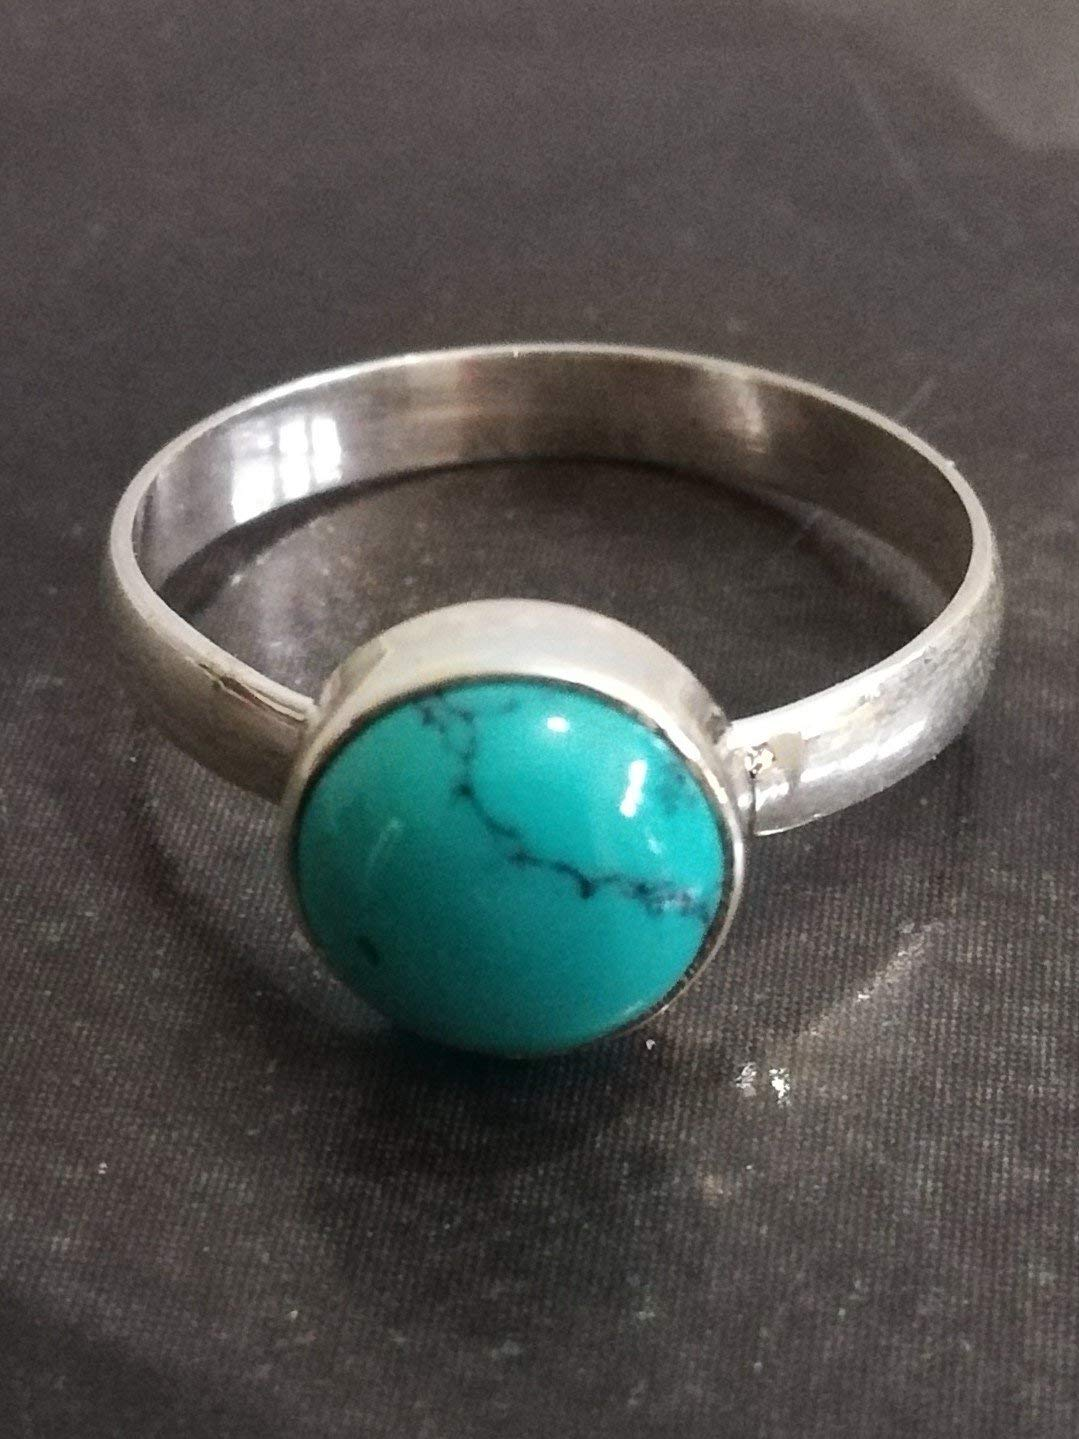 Turquoise Ring, 925 Sterling Silver, Summer Ring, Motivating Ring, Attractive Love Gift, Bridal Shower Ring, Stylish Ring, Exclusive Ring, Classy jewelry, Traditional Ring, Custom Ring, US All Size